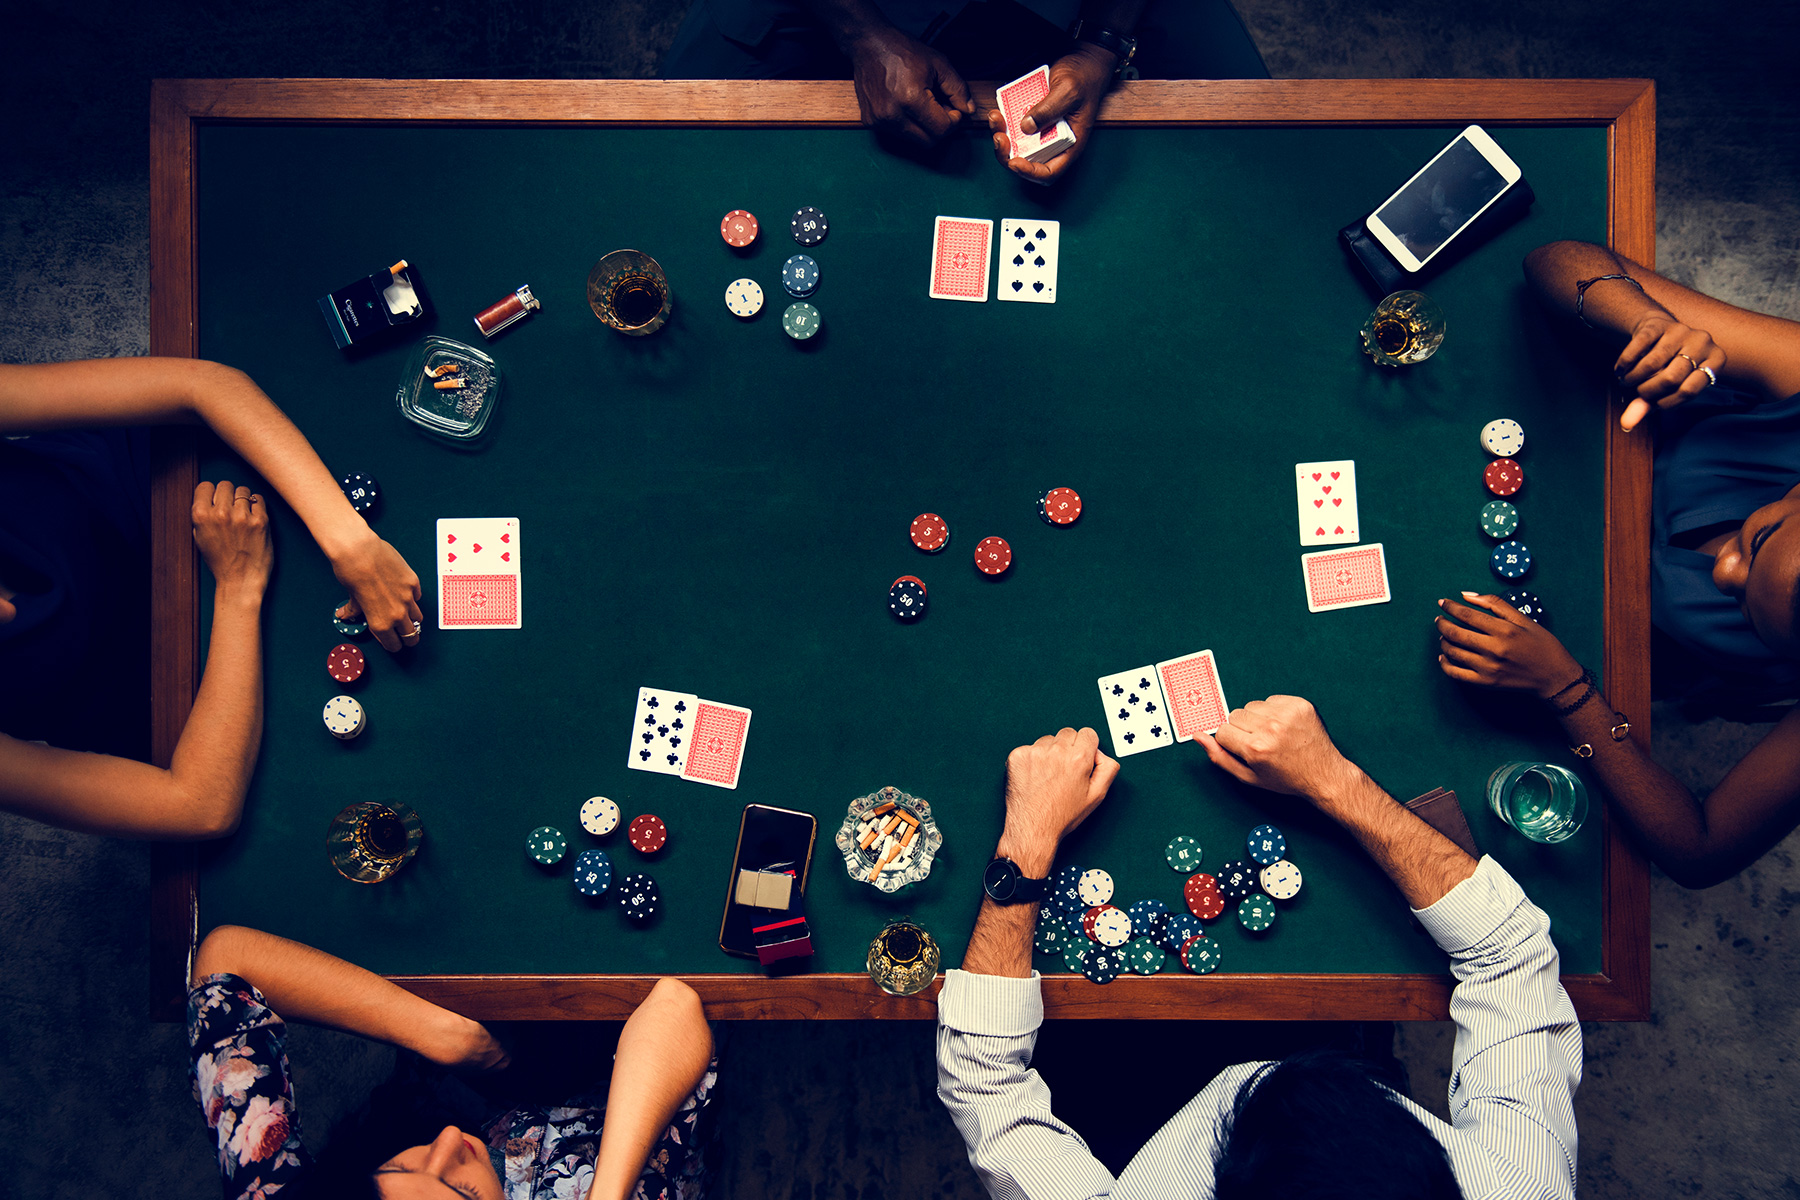 How to choose an online casino to bet?